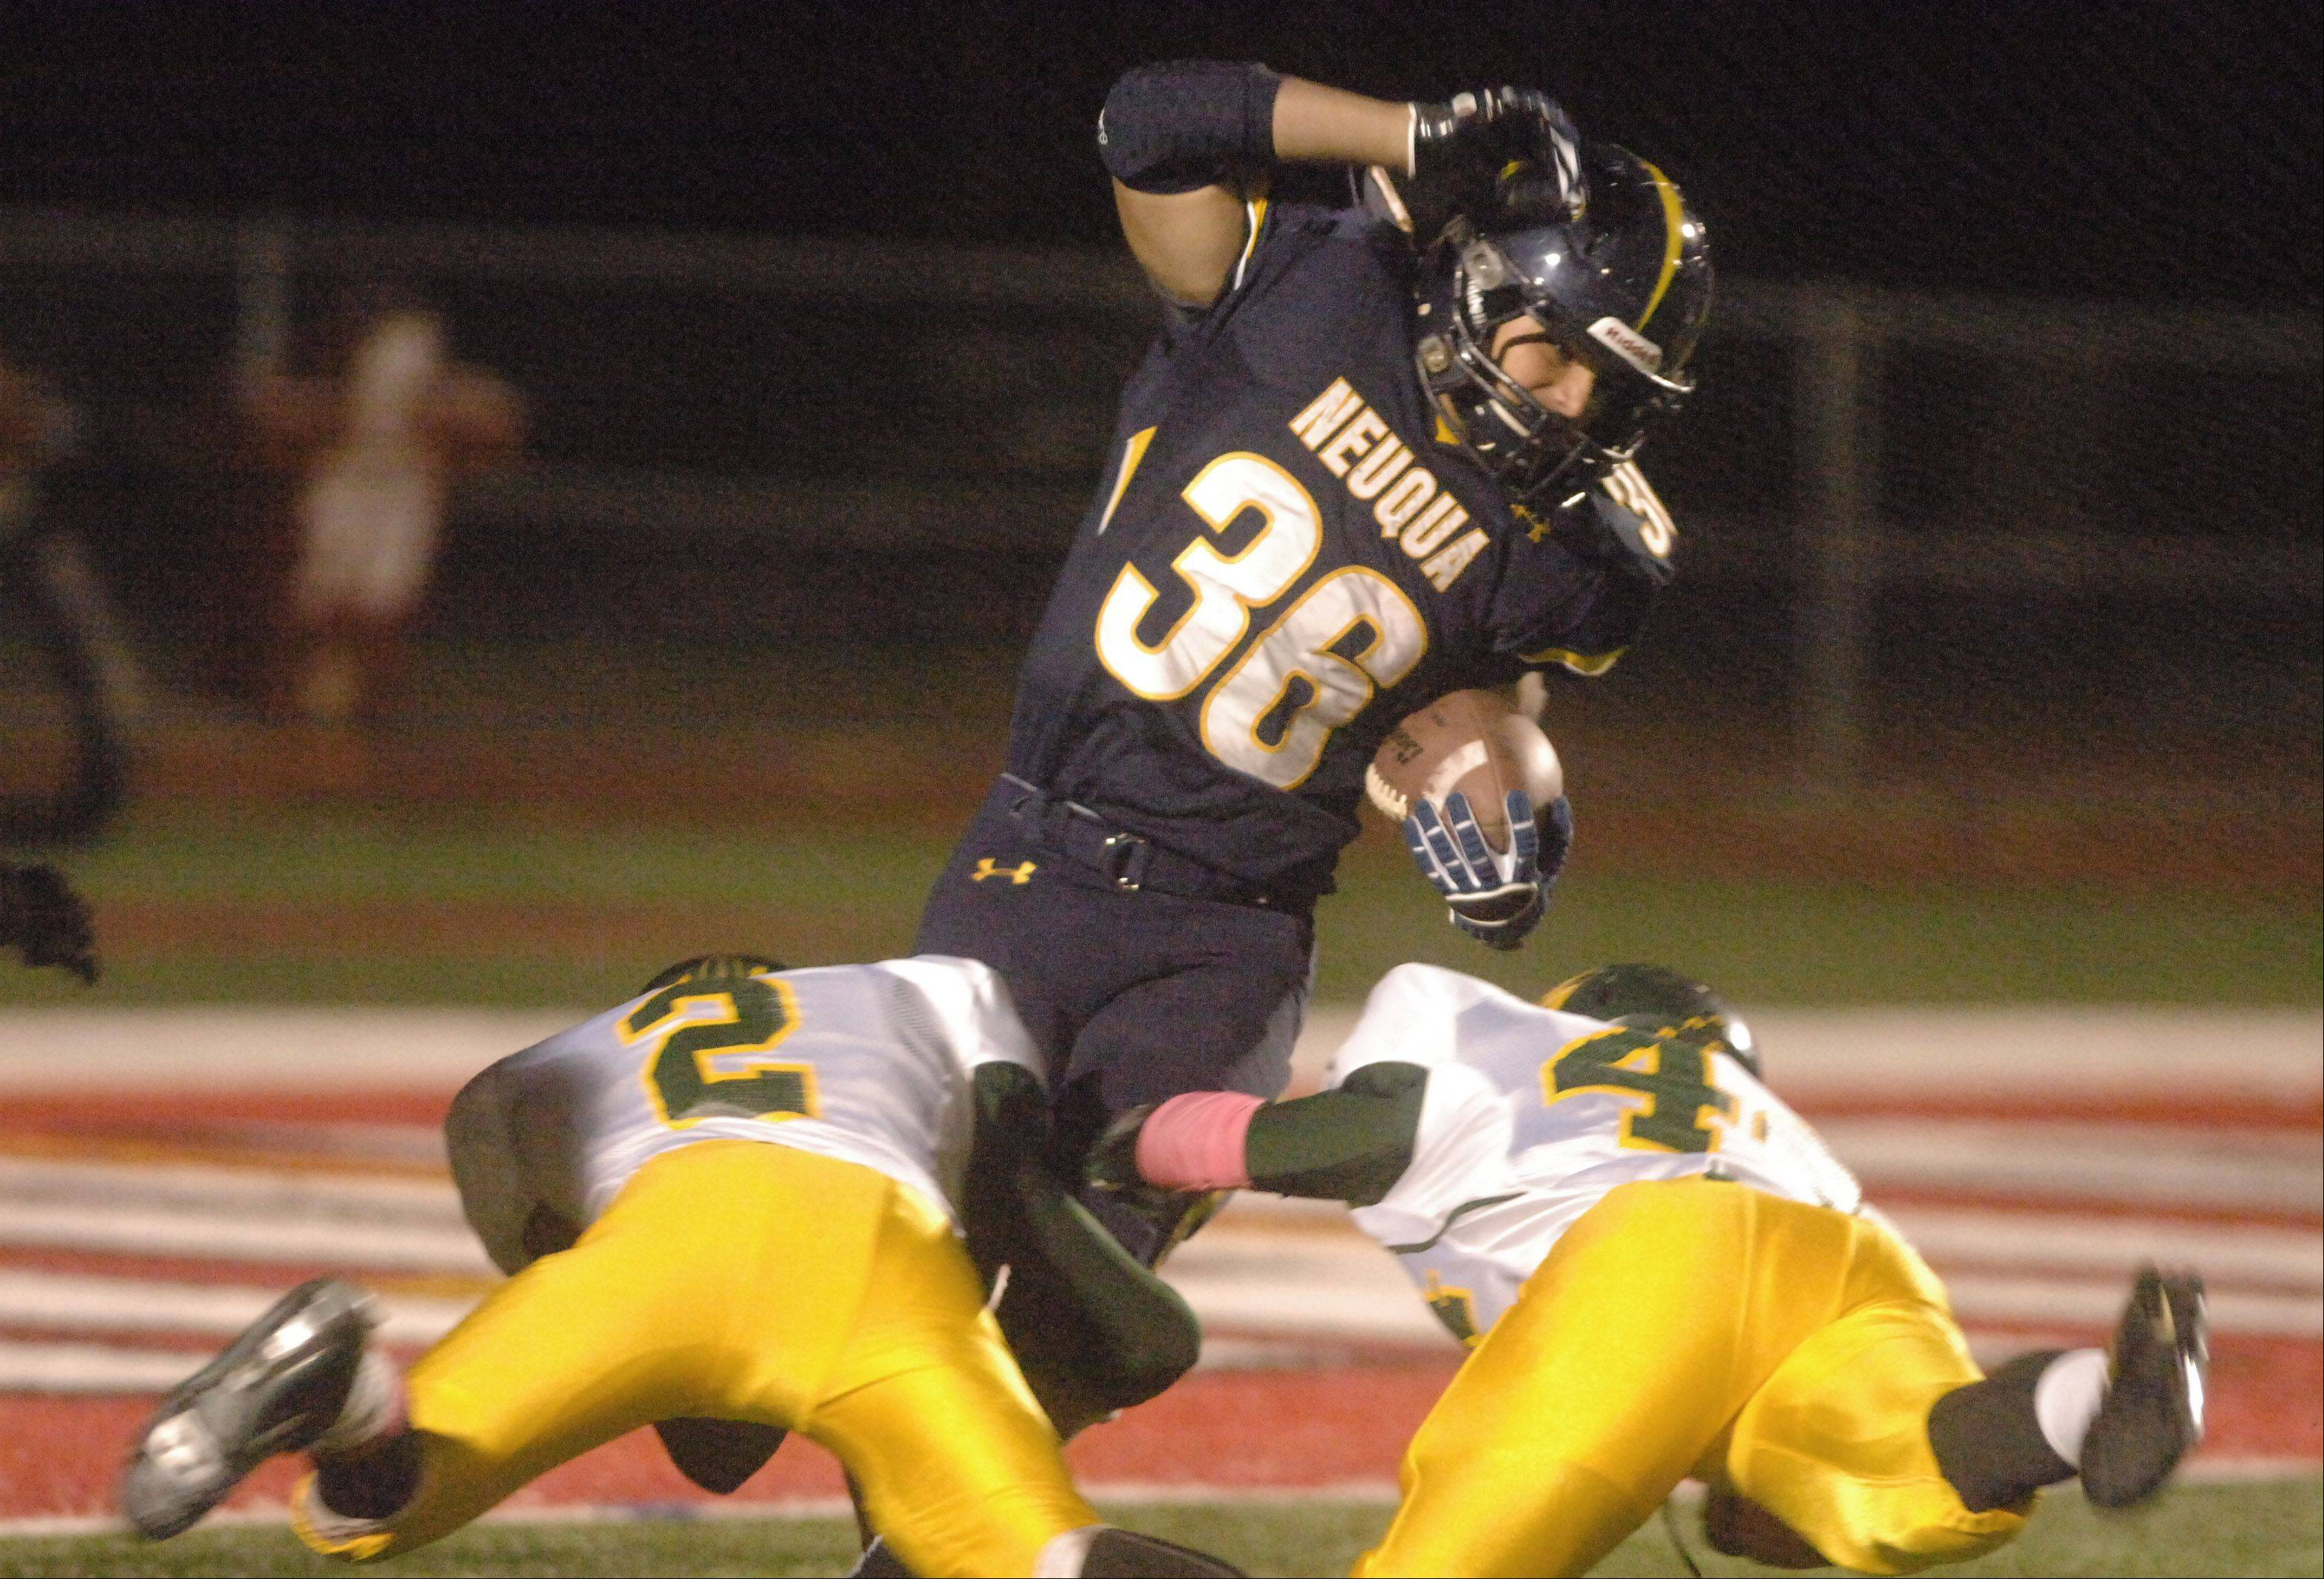 Joey Rhattigan of Neuqua Valley,center, is pulled down by Brock Westwood and Connor Ihry.